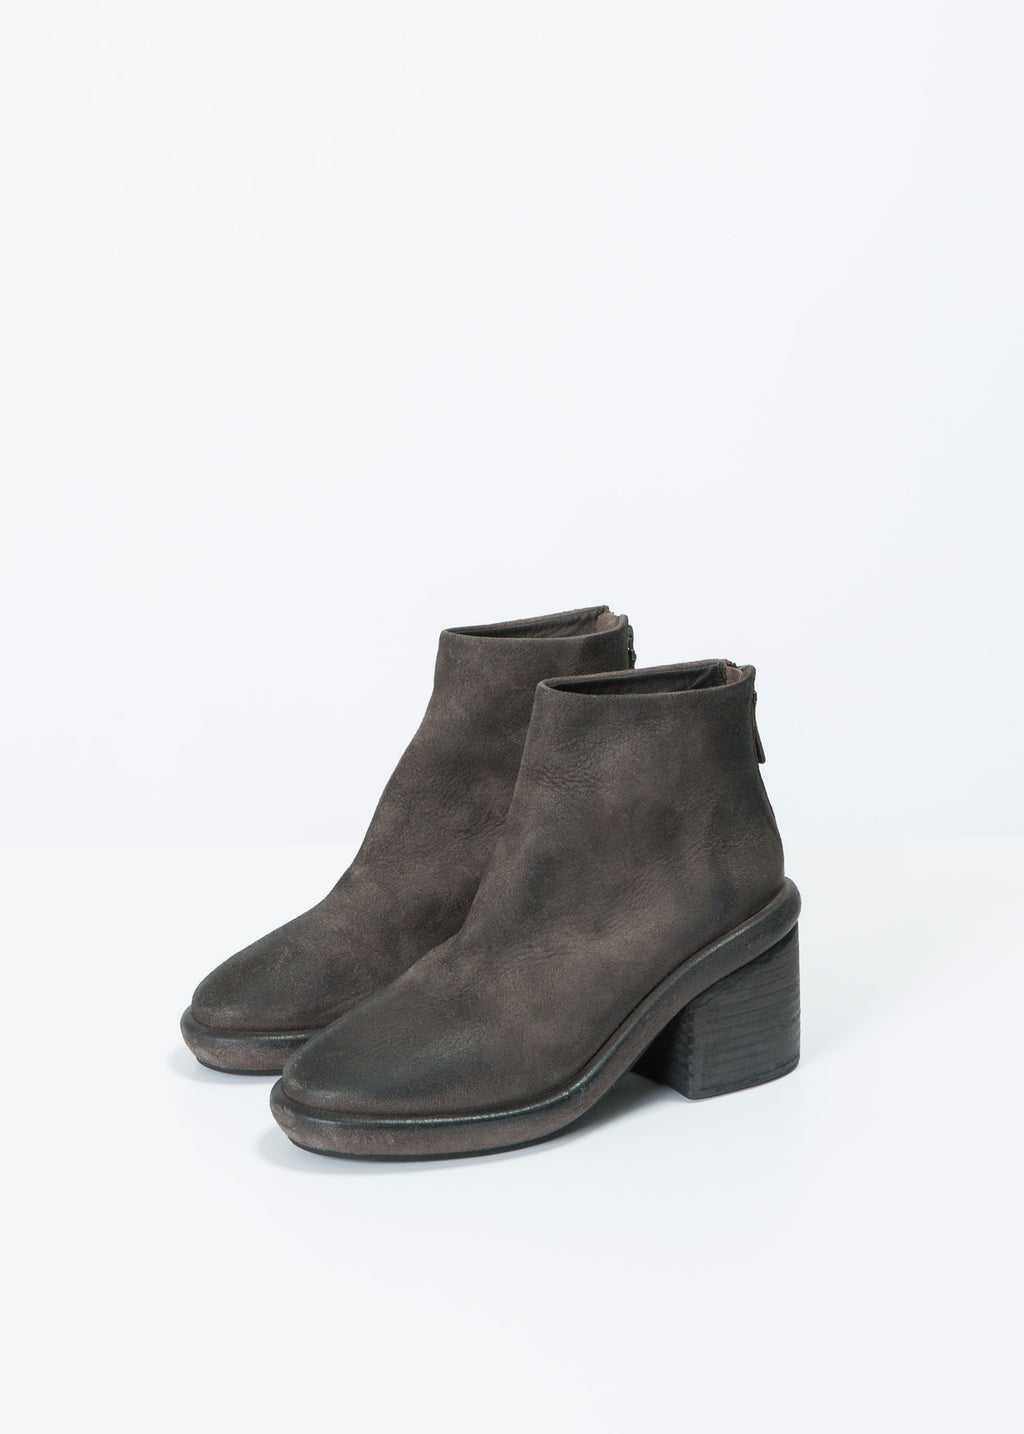 Salvagente Back-Zip Bootie